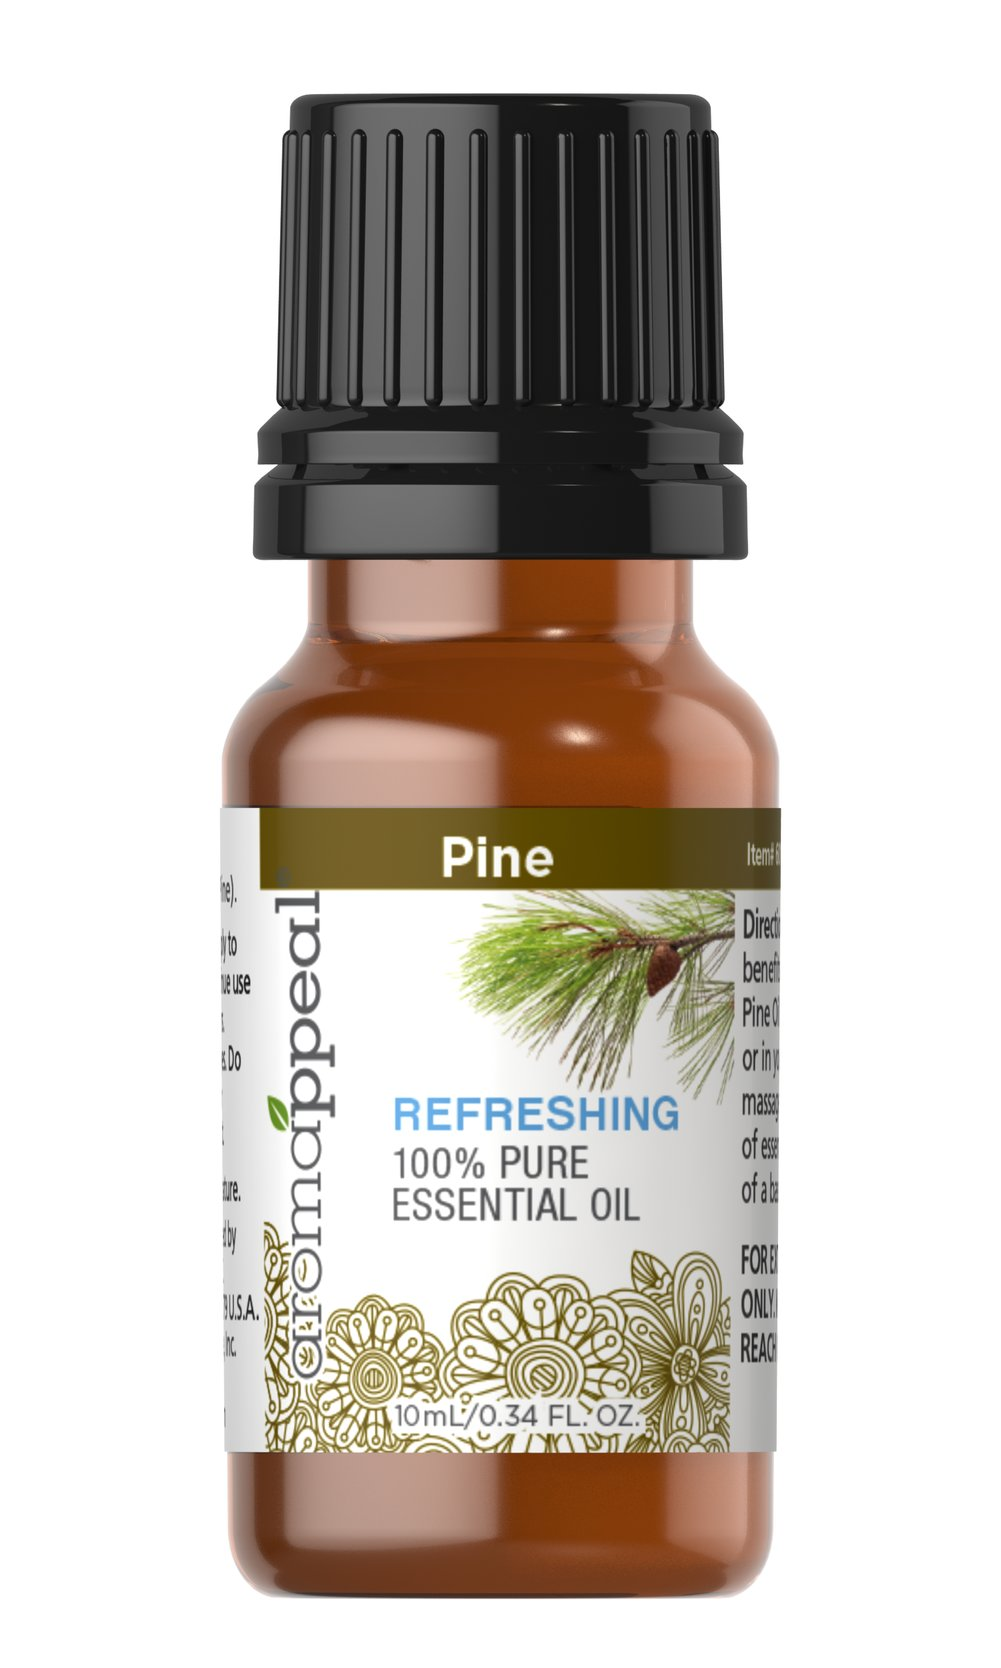 "Pine 100% Pure Essential Oil <p>Awaken your senses with the woody, evergreen aroma of Pine. This vibrant oil is powerfully distinct and has the ability to leave you centered and utterly refreshed.</p><ul><li><span class=""bold-pink"">Traditional Uses:</span> Refreshing and uplifting.<br /></li><li><span class=""bold-pink"">History:</span>  Awaken your senses with the woody, evergreen aroma of Pine. This vibrant  oi"